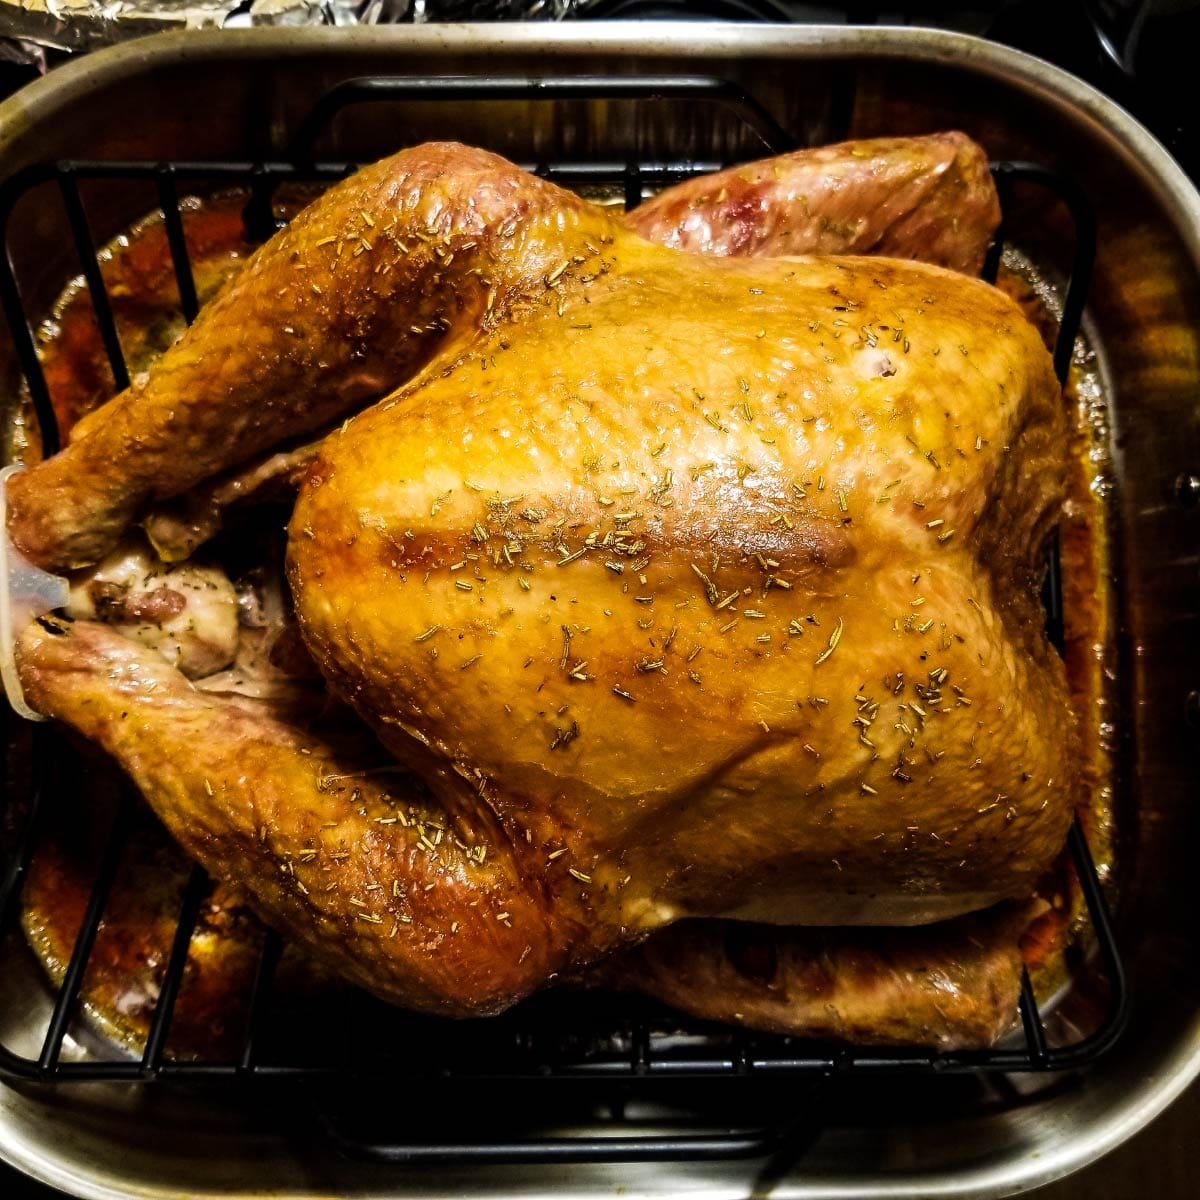 Turkey in a roasting pan that just came out of oven